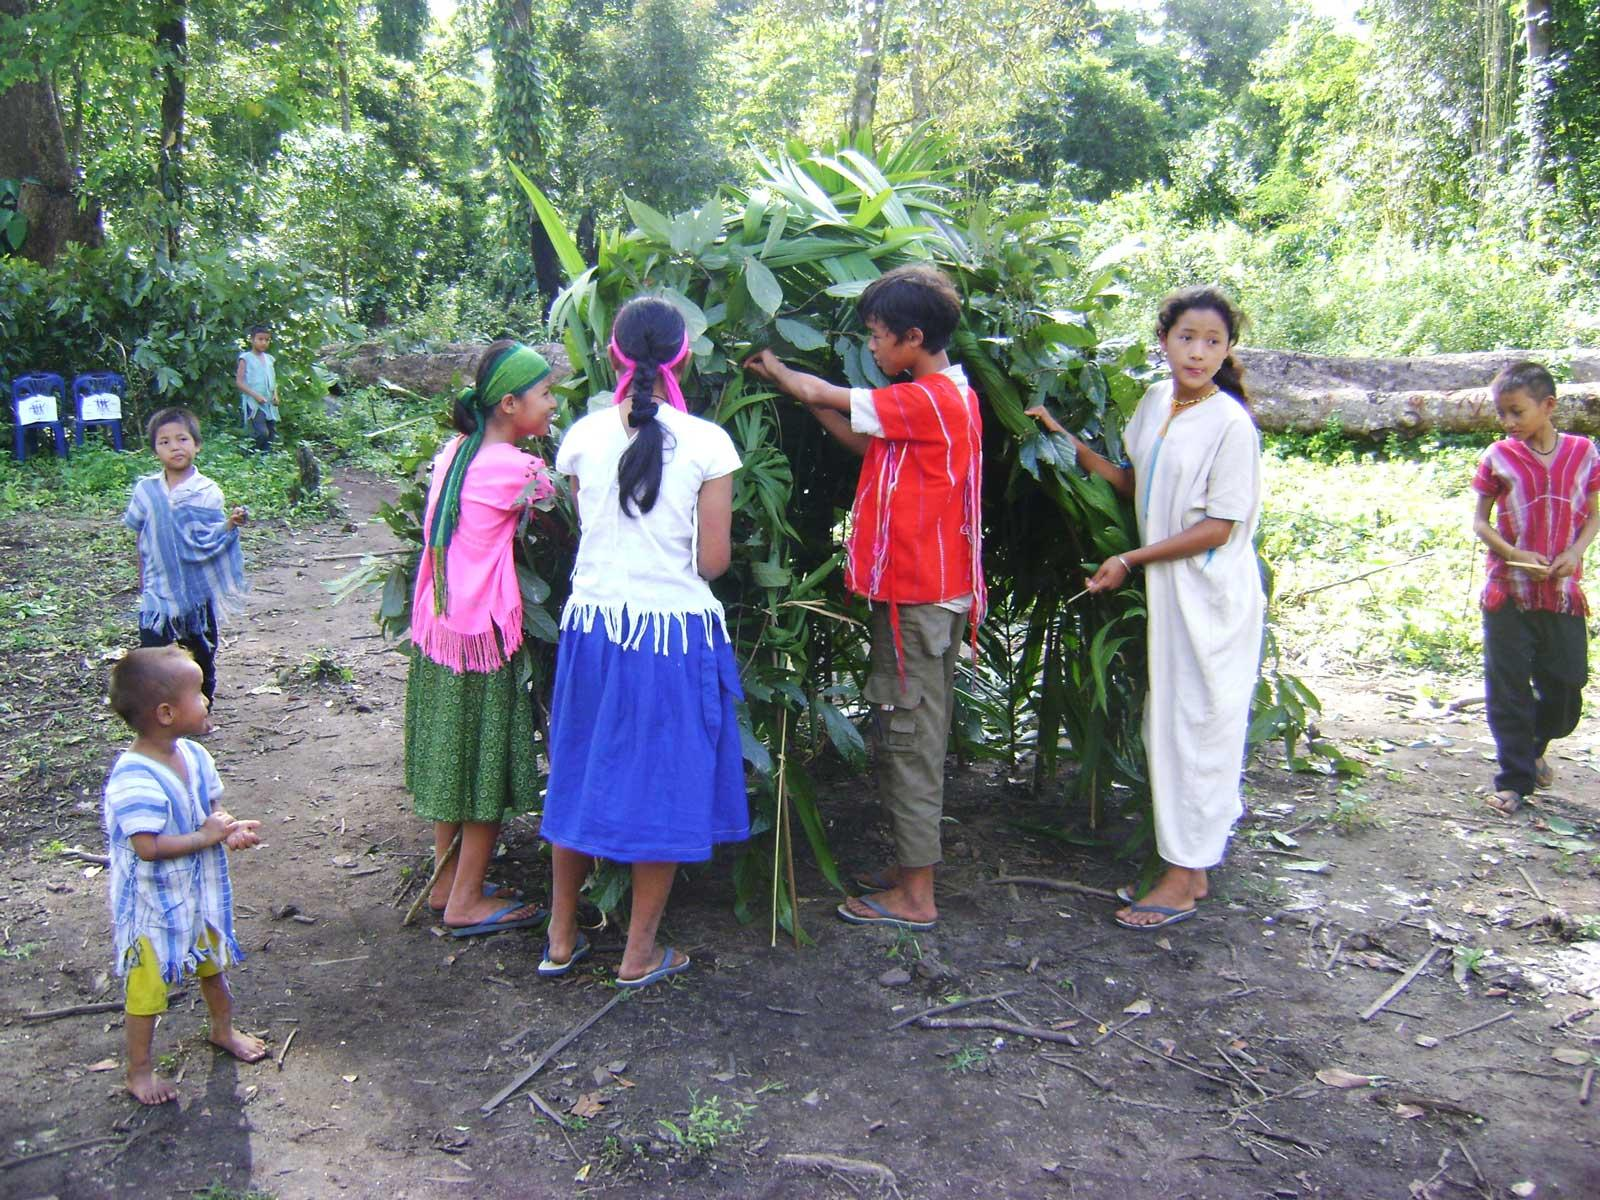 a group of children building a booth with plants